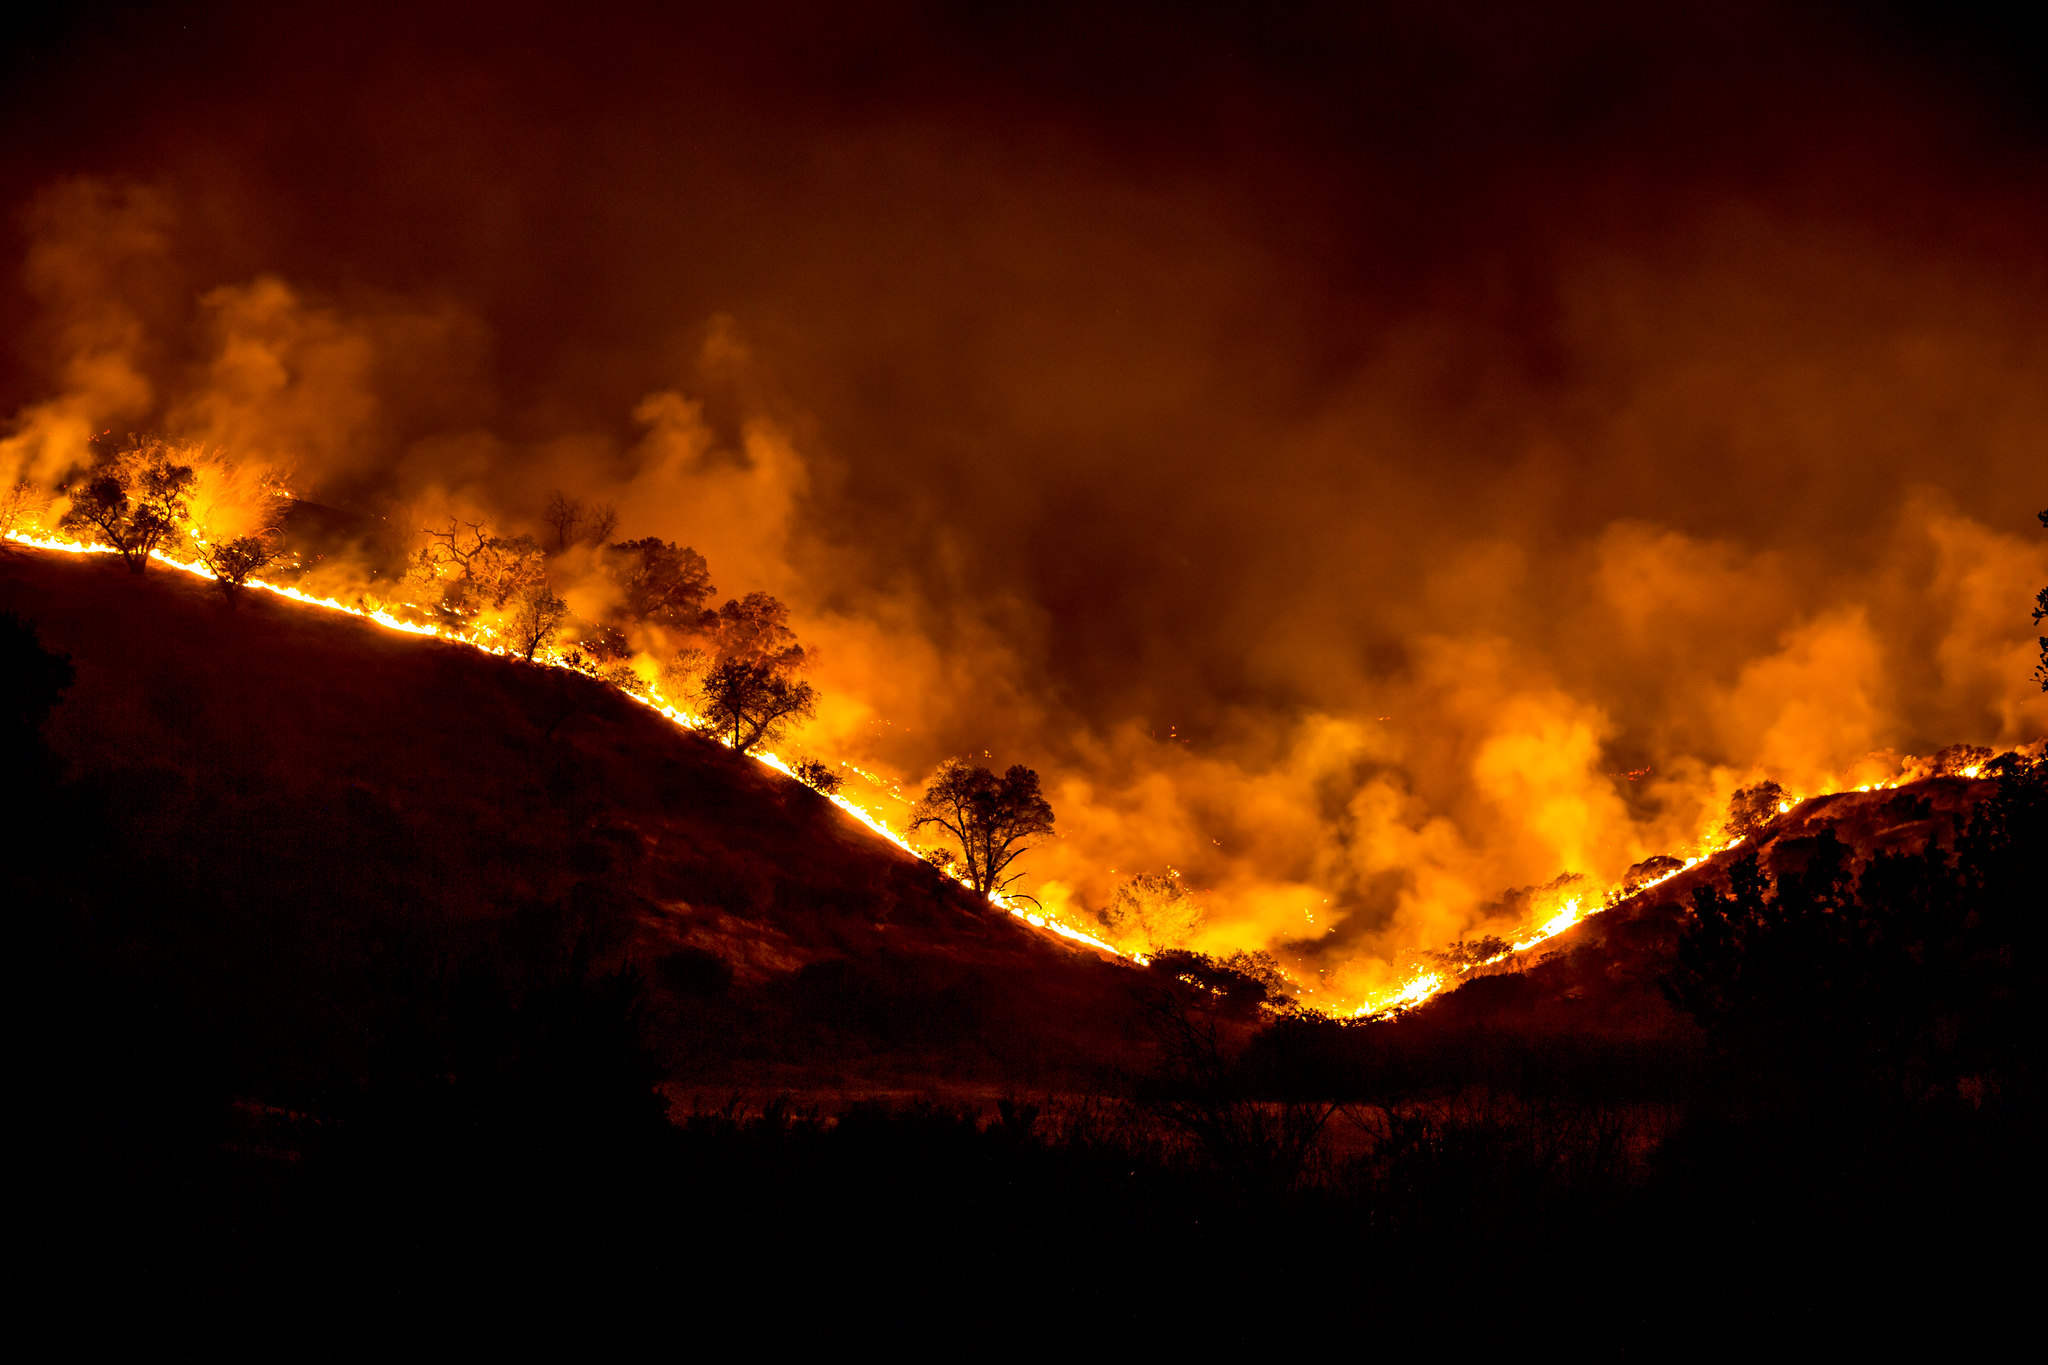 A fire crowning two hills, with black trees silhouetted against the orange glow.